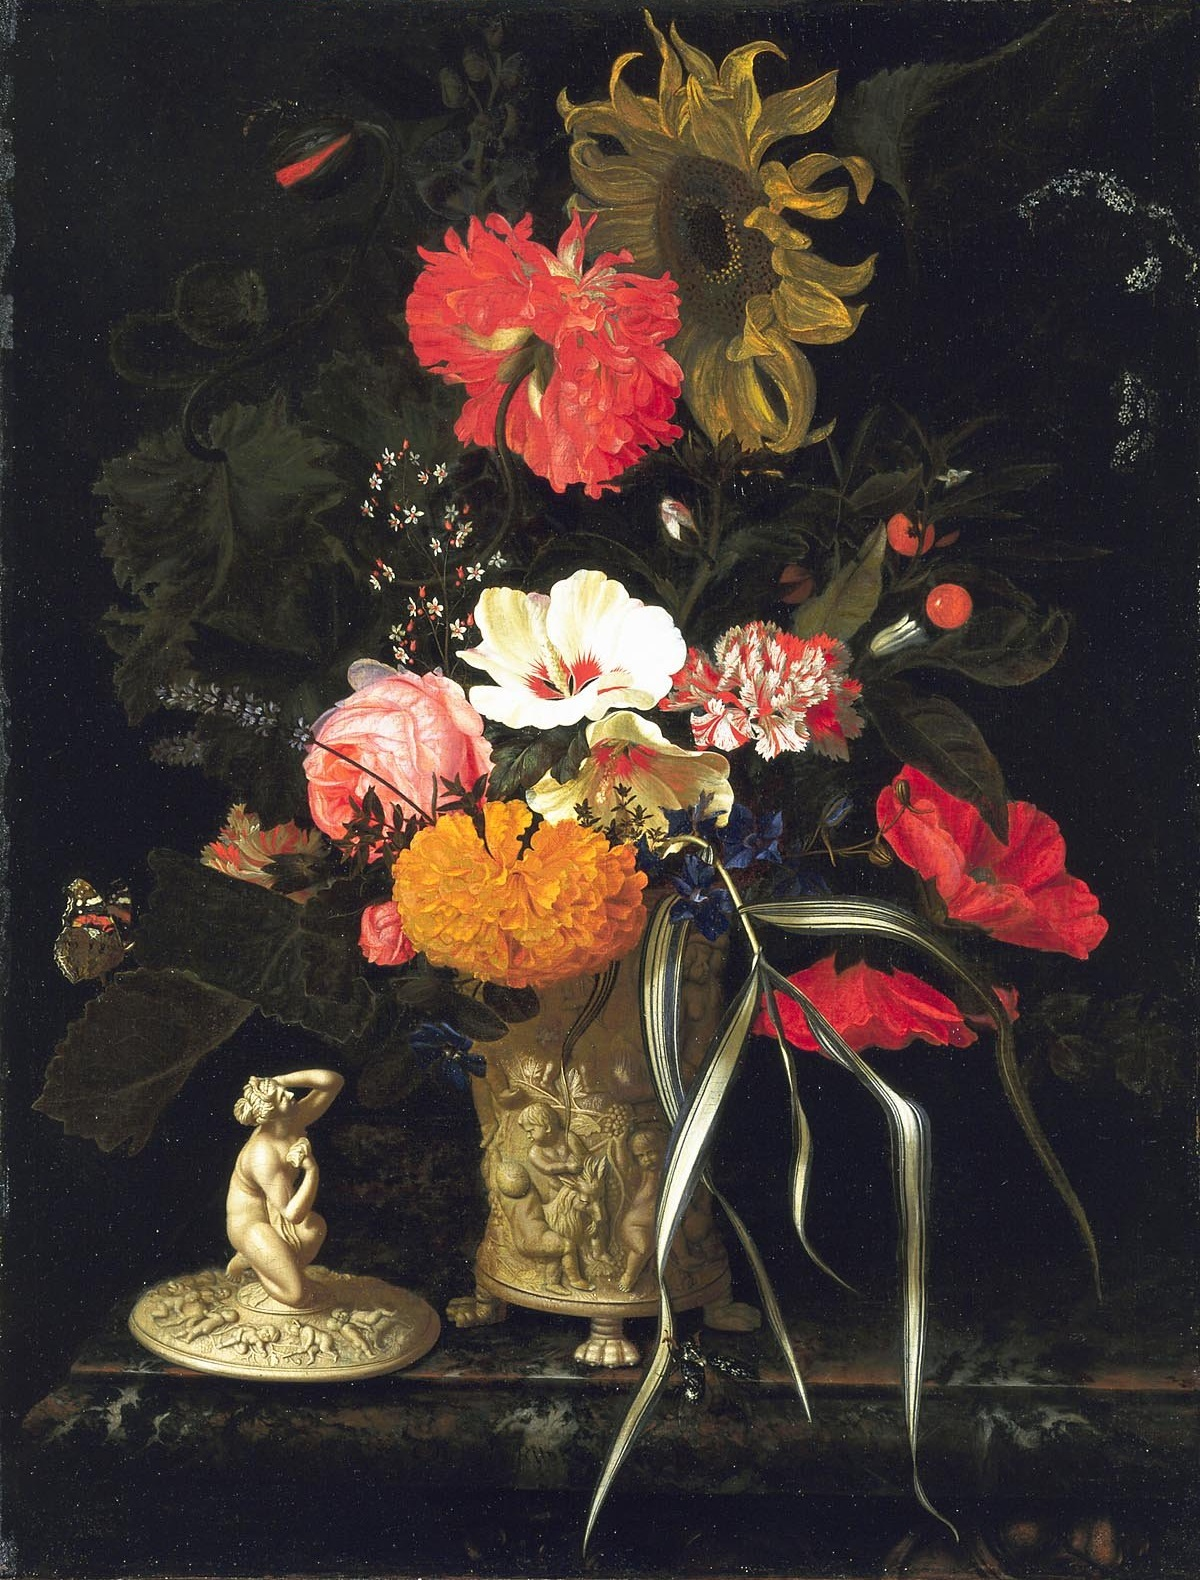 FileStill Life With Flowers In A Decorative Vase